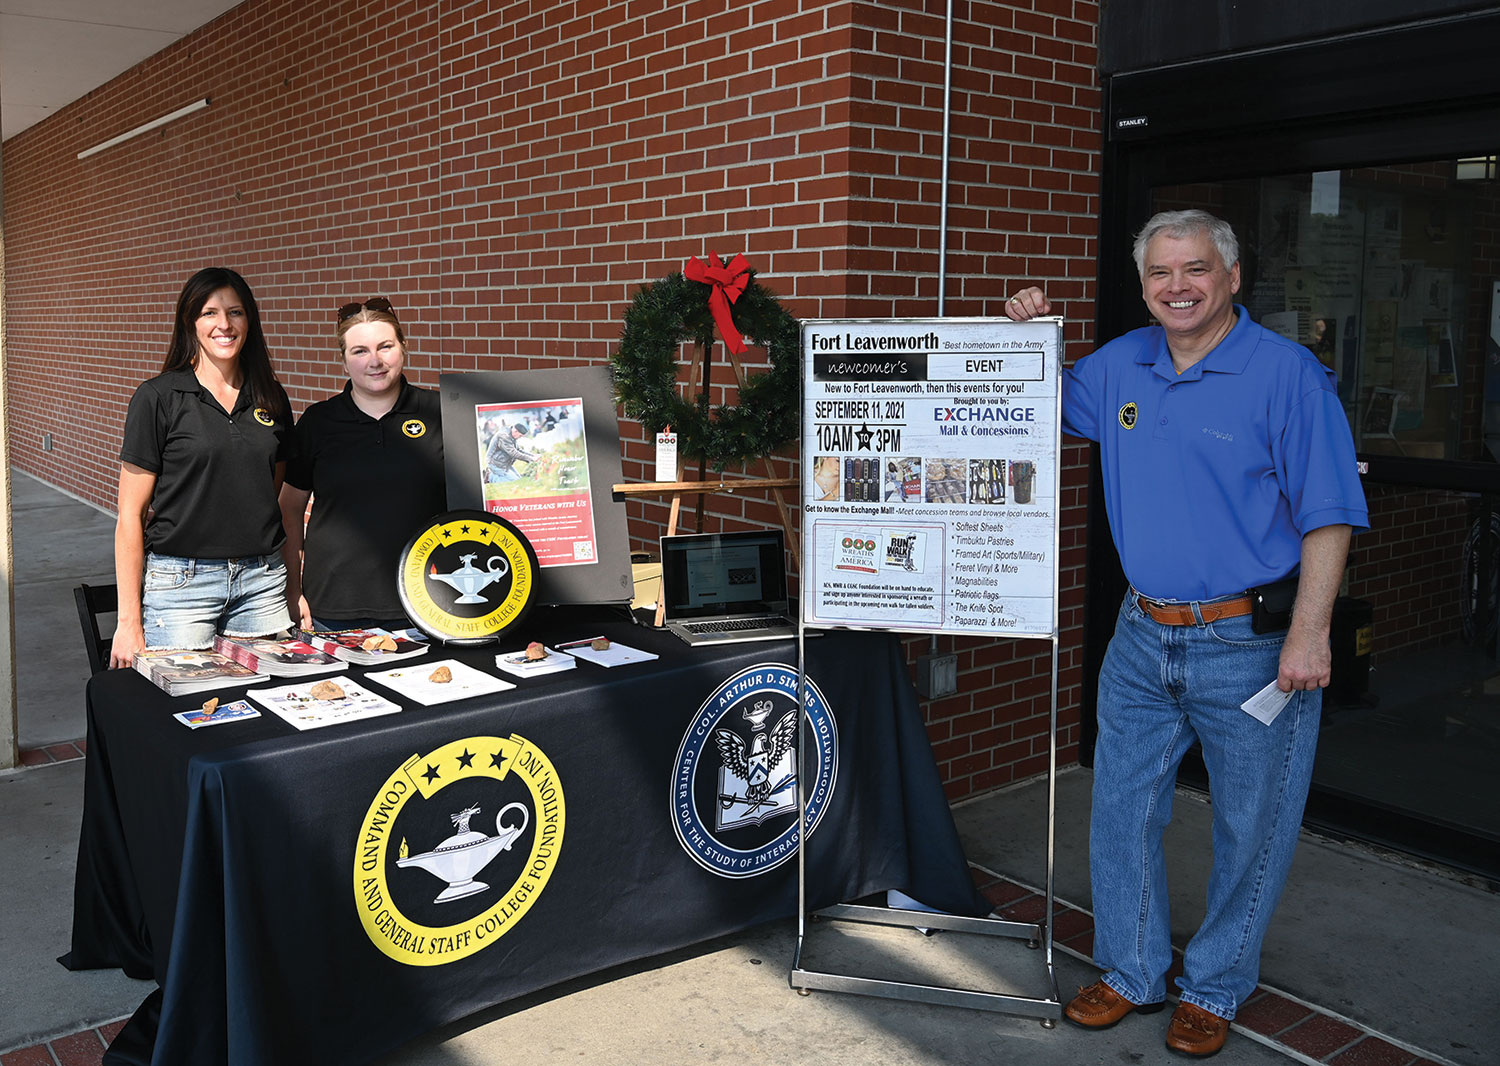 The CGSC Foundation set up a Wreaths Across America booth at the Fort Leavenworth Post Exchange on Sept. 11, 2021 to increase awareness of wreath sponsorships. From left, Lora Morgan, director of operations, Elizabeth Hill, program assistant, and Rod Cox, president/CEO.